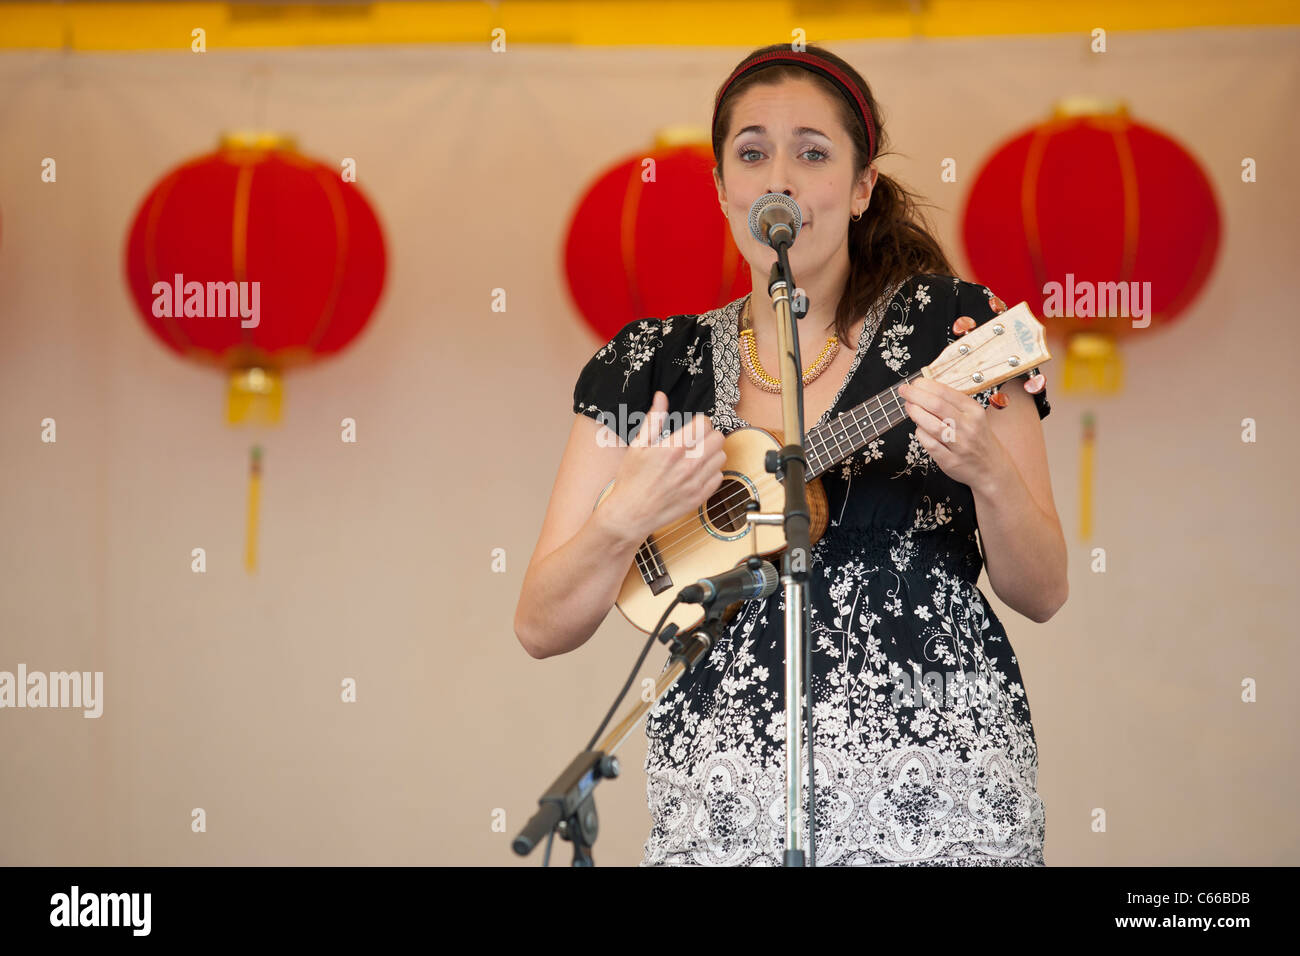 Female singer playing ukelele and singing at Dragon Boat festival-Victoria, British Columbia, Canada. - Stock Image